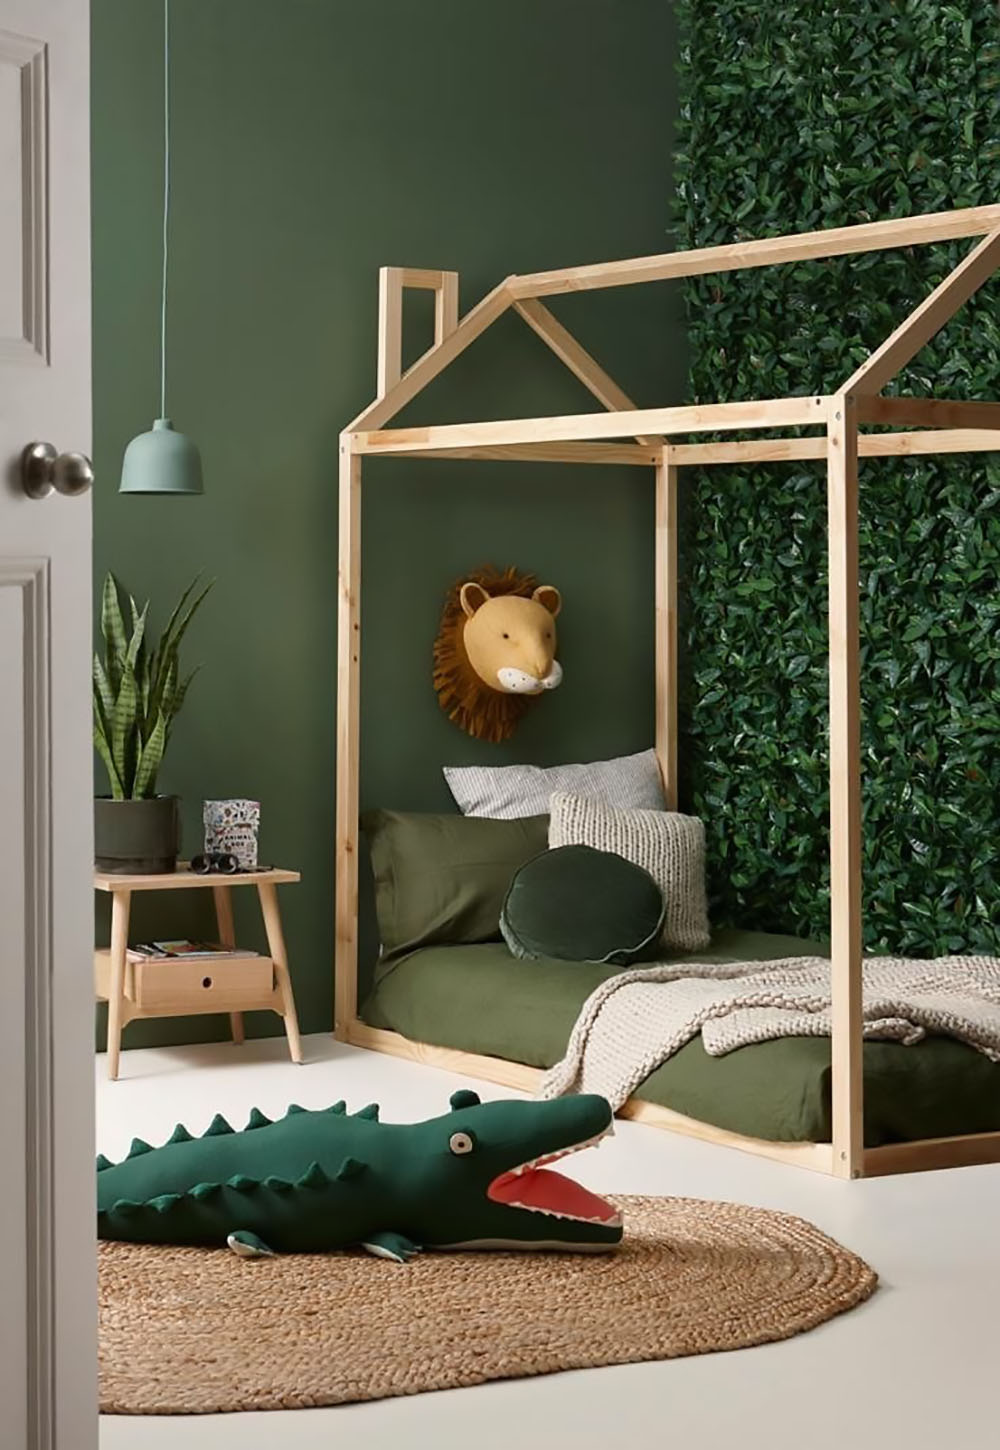 house bed frame in green boy room